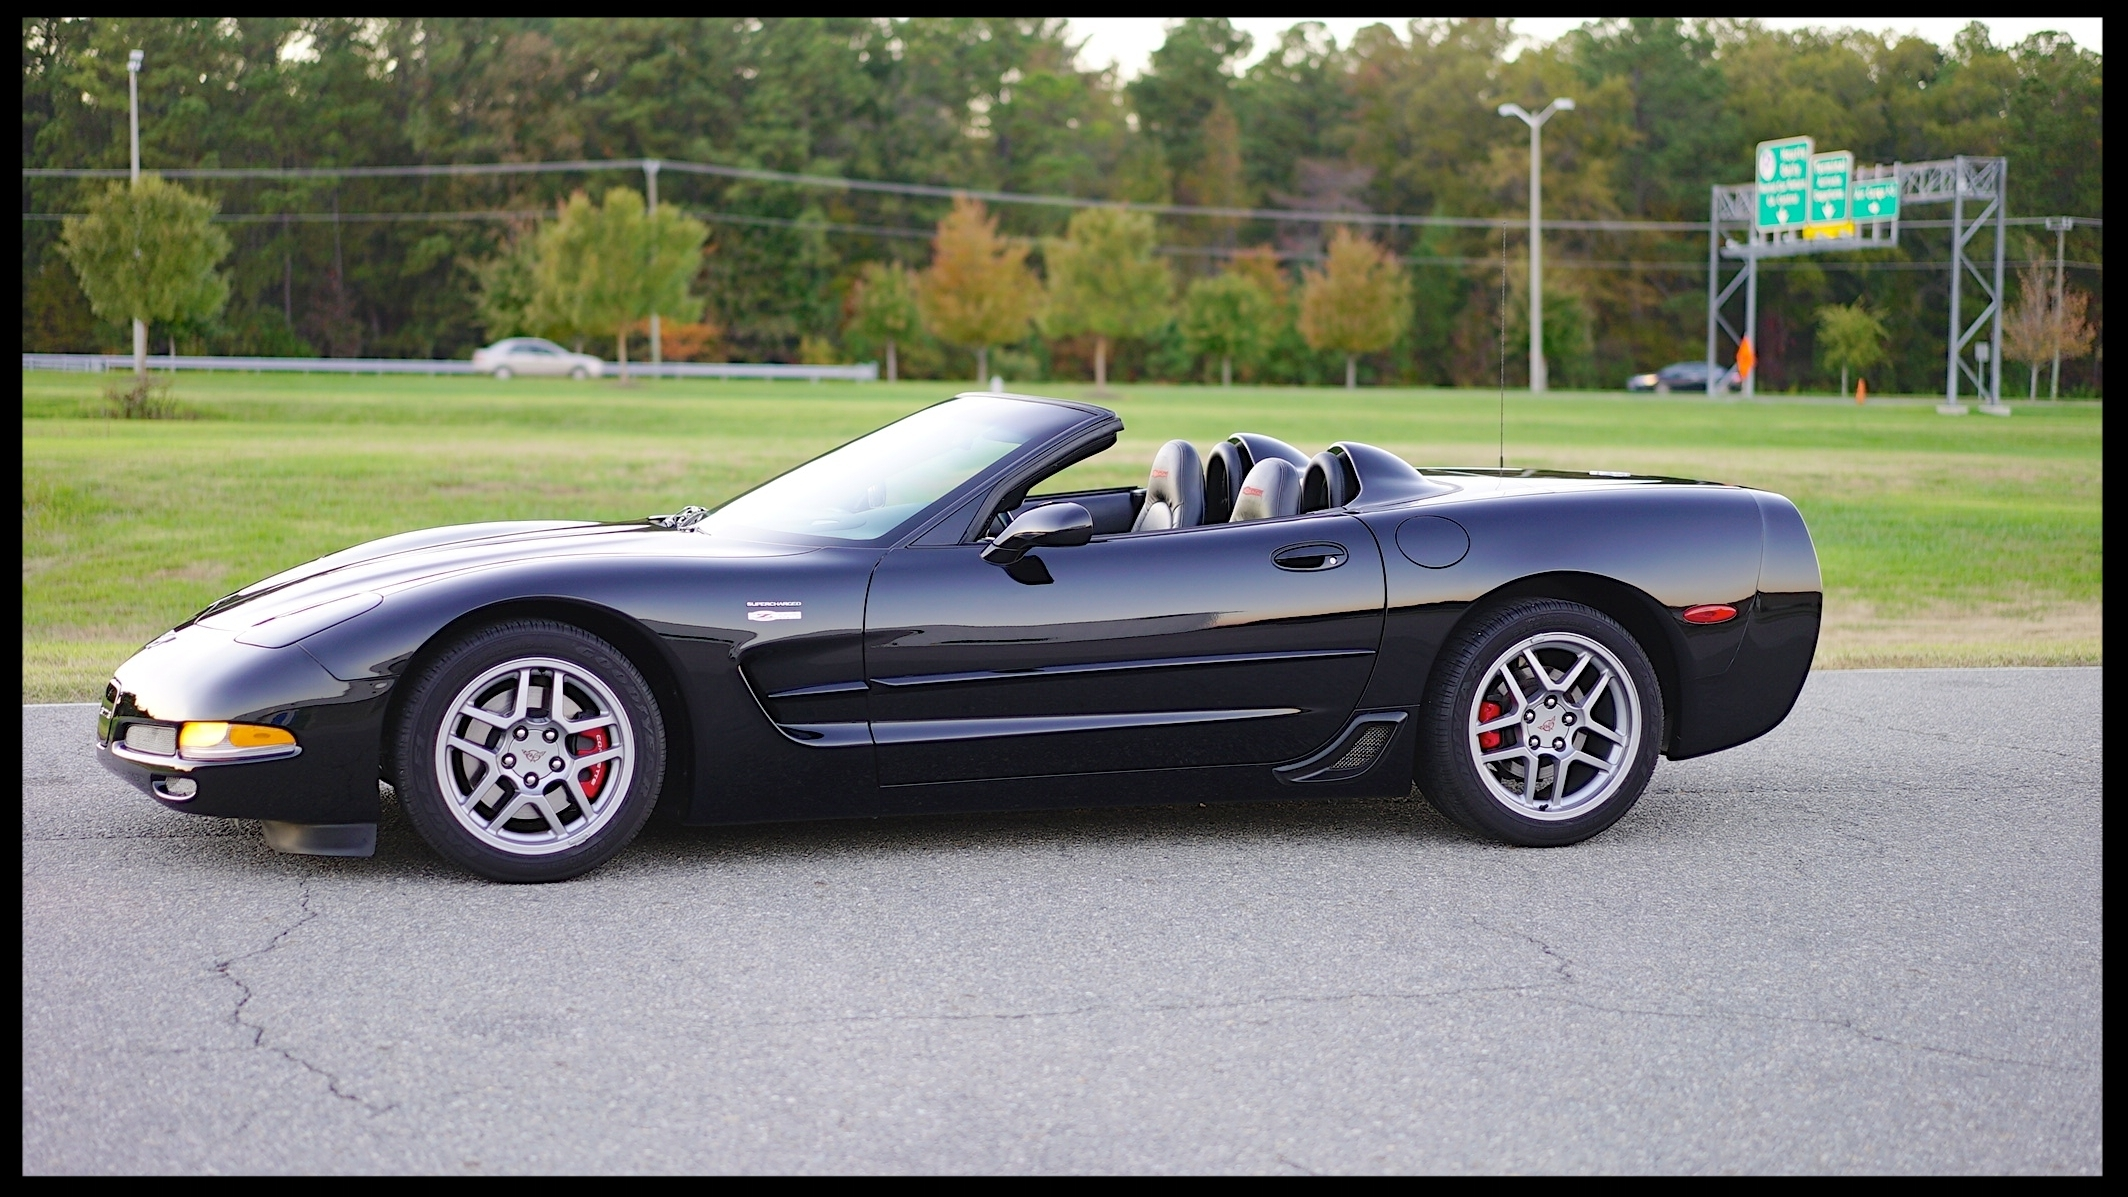 Very Rare 1 of 1 Factory Z06 with Hardtop and Softop Convertible conversion. ProCharger SuperCharger and More...ONLY 5K Miles